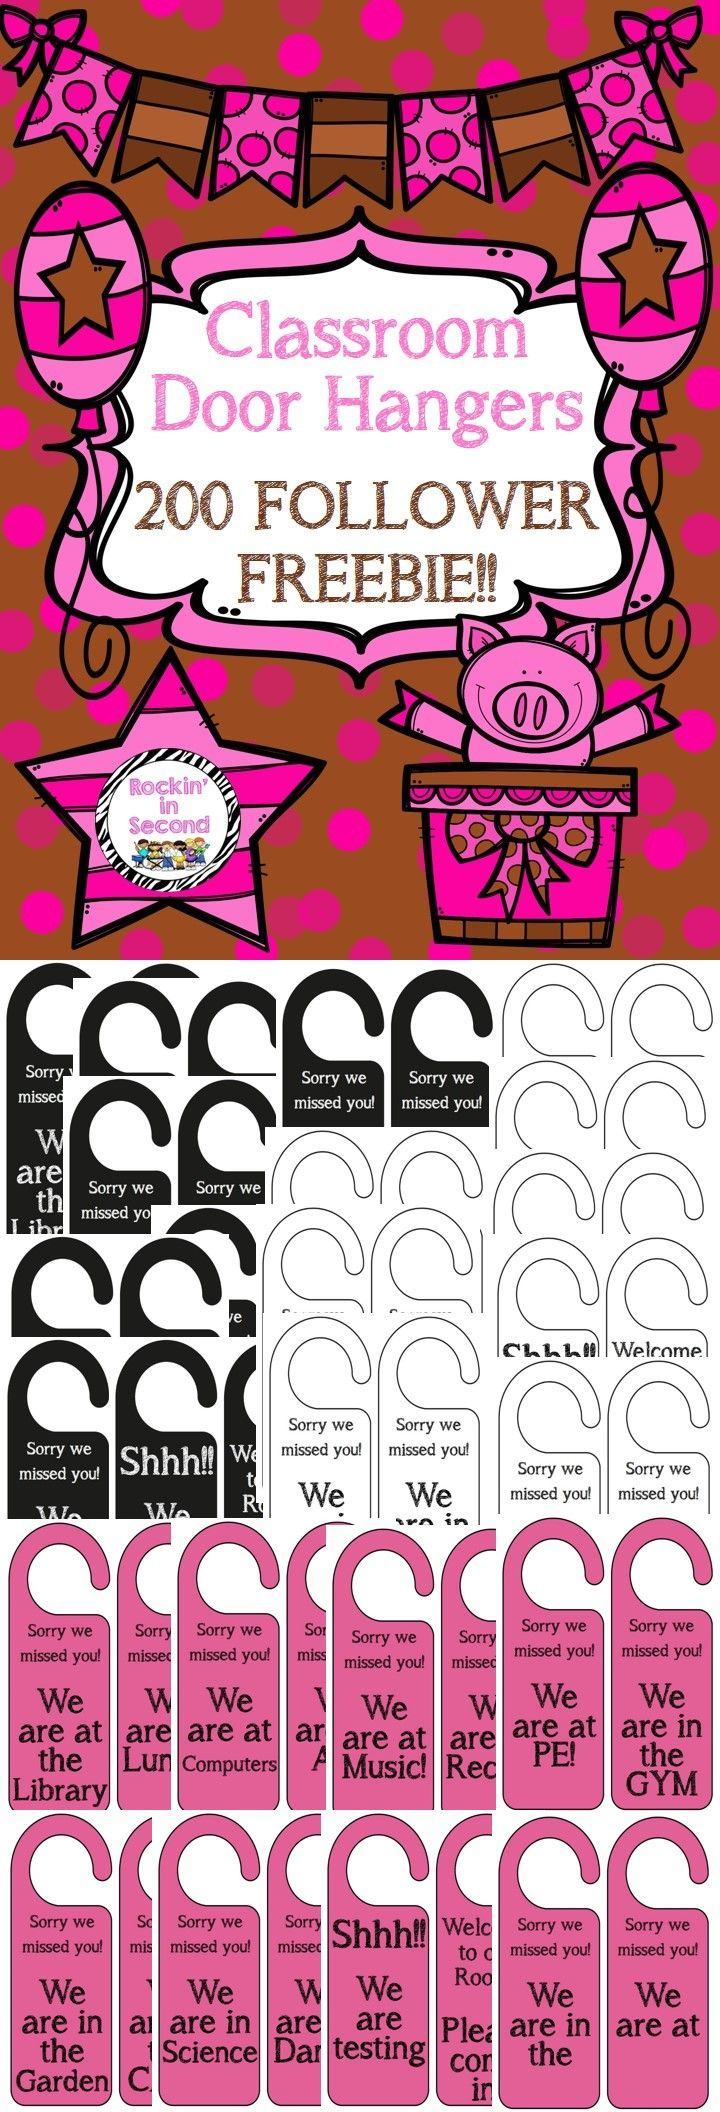 Enjoy these simple Classroom Door Hangers to notify people where you are or to let them know you are testing. Each set comes in Black with White letters, Pink, and White with Black for saving ink. Simply print on cardstock, laminate and cut!! Follow me on TPT for more exciting activities and FREEBIES!! All new products are 50% off for the first 24 hours. Like me on Facebook too: www.facebook.com/rockininsecond